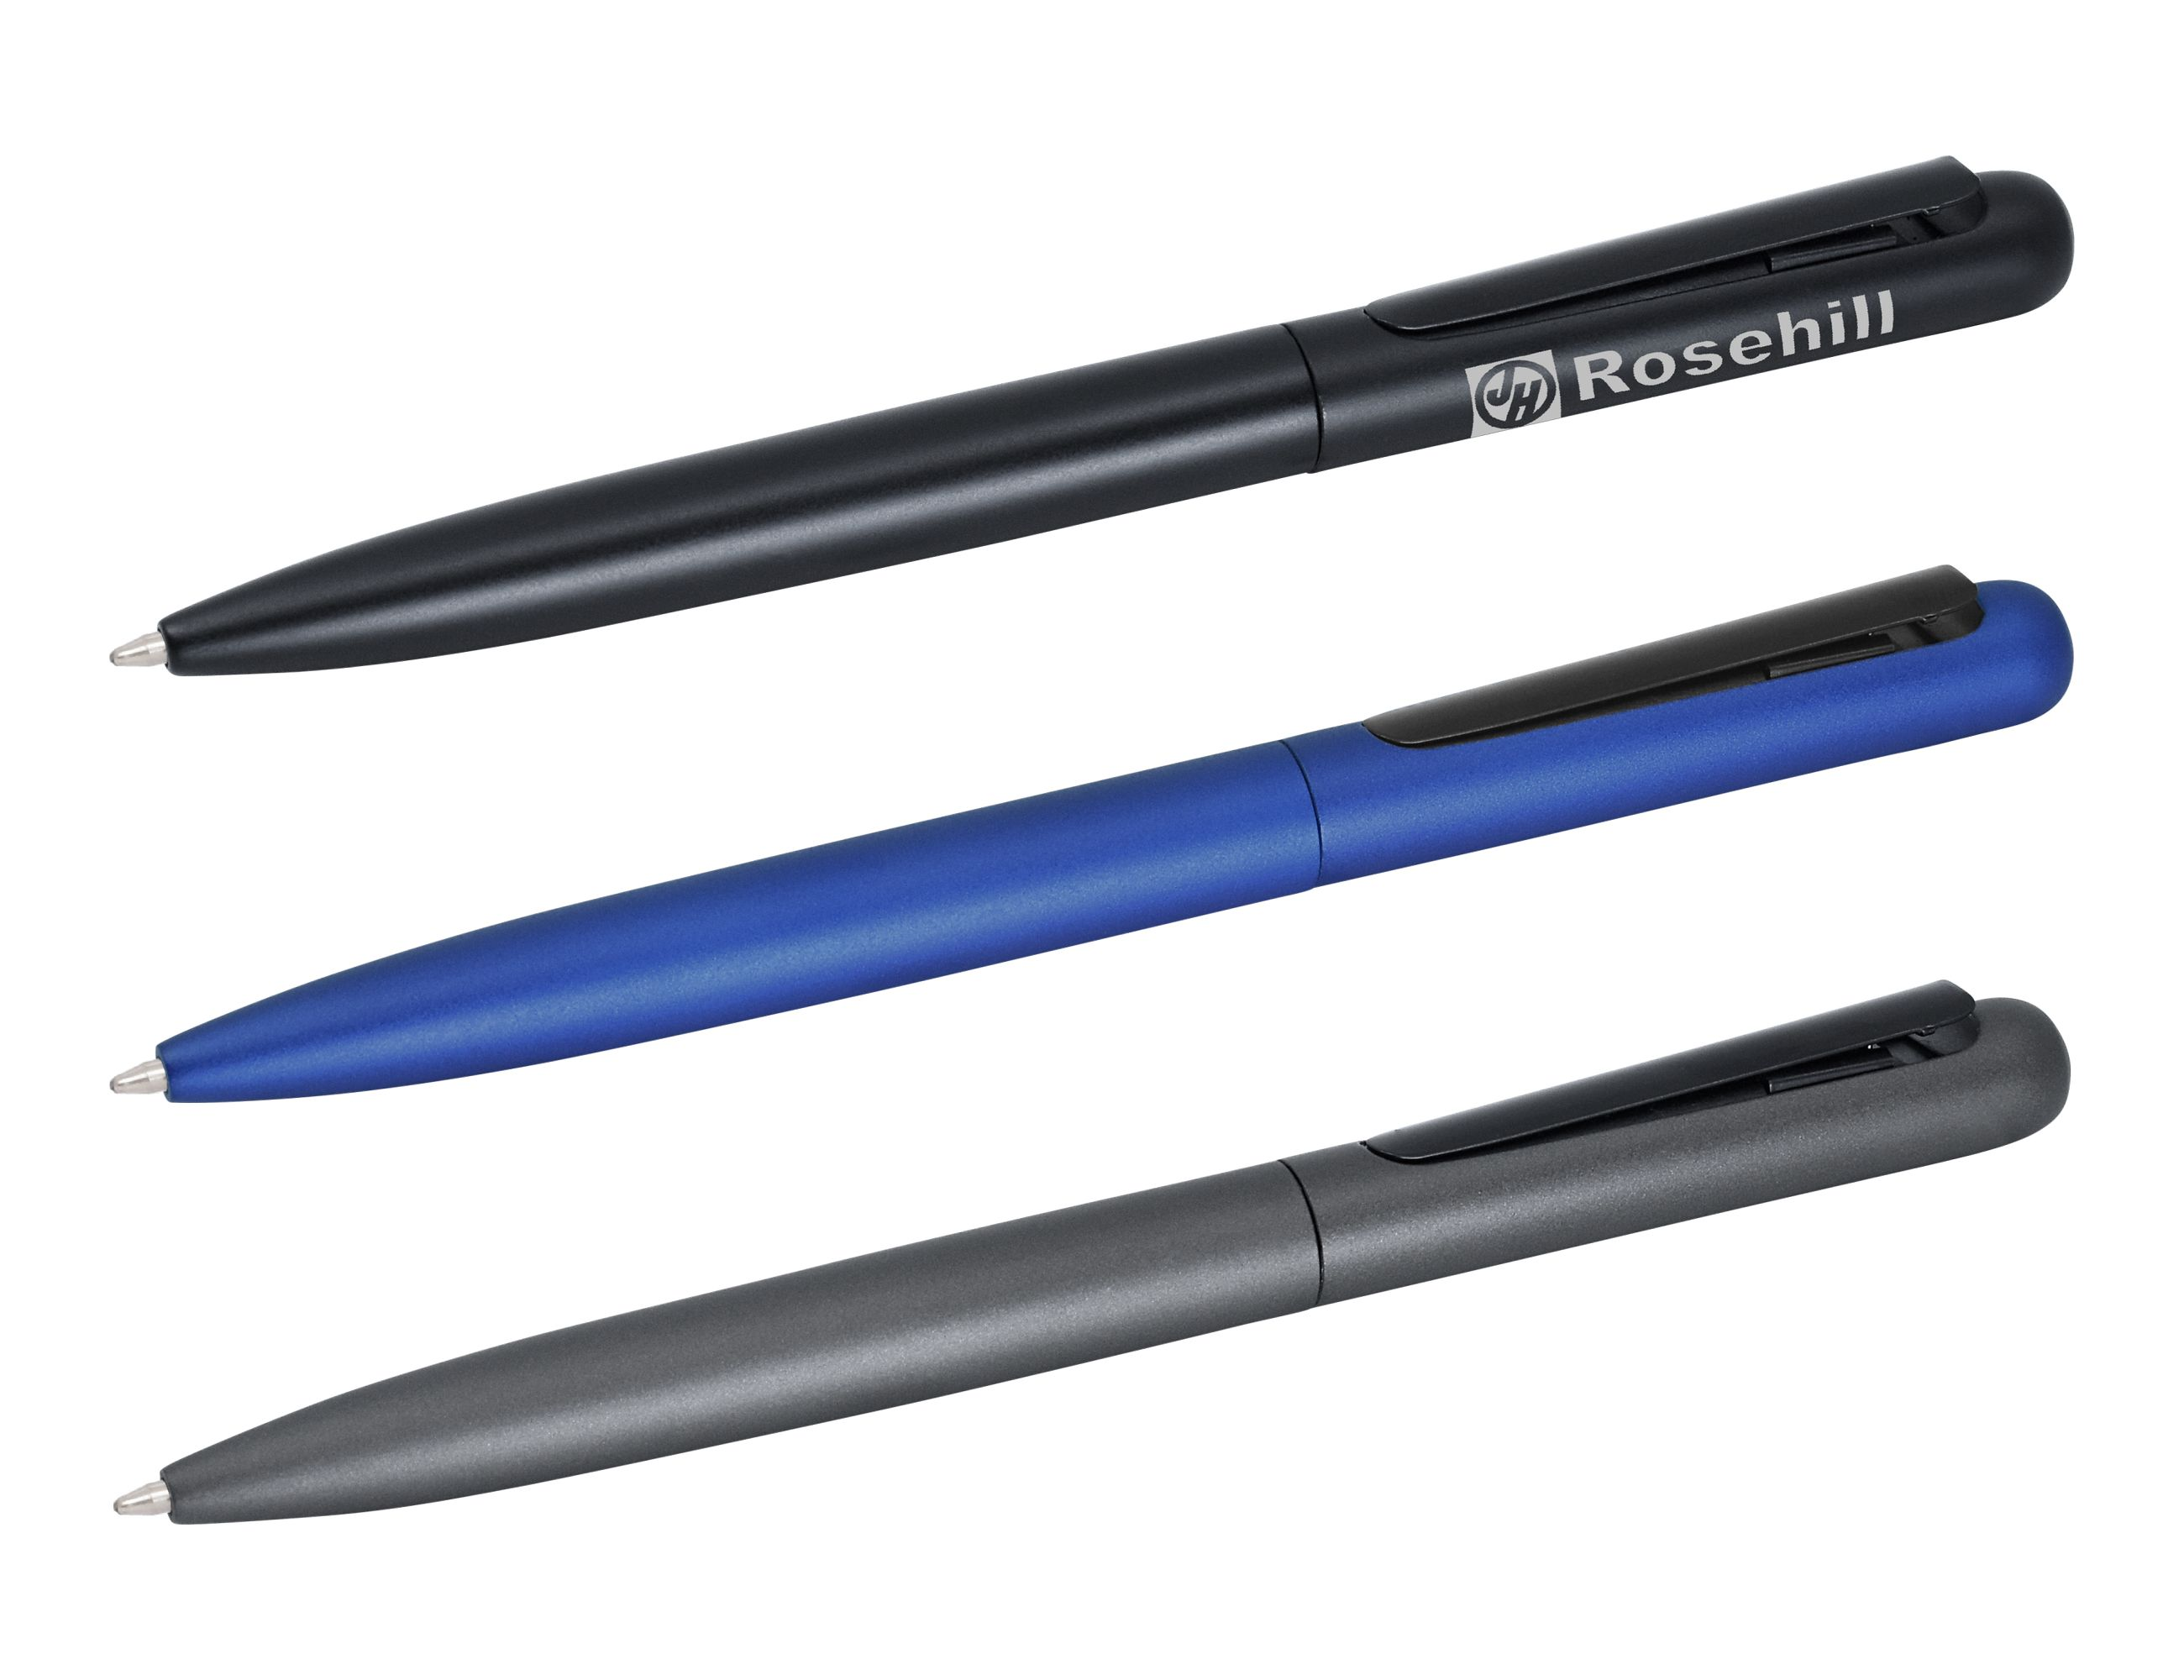 Promotional Product Berliner Pen